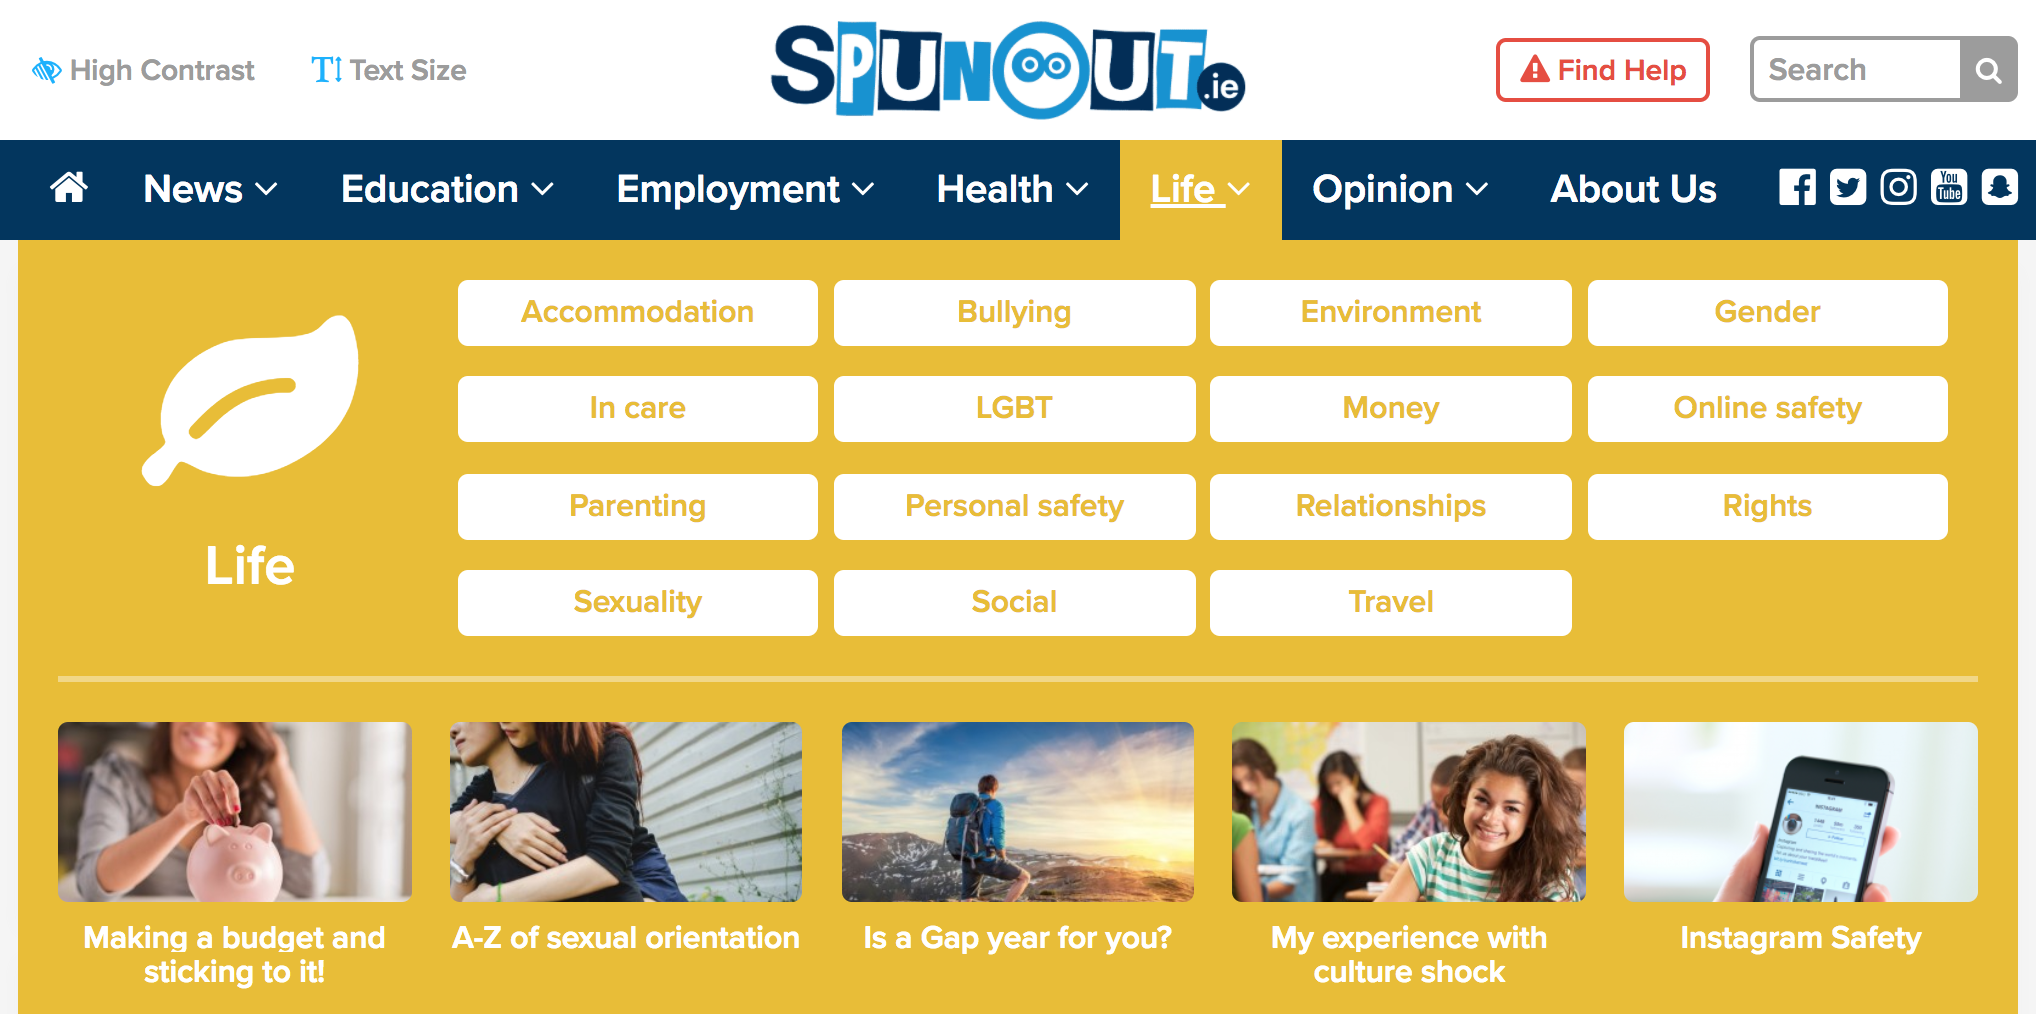 An image of spunout.ie life tab